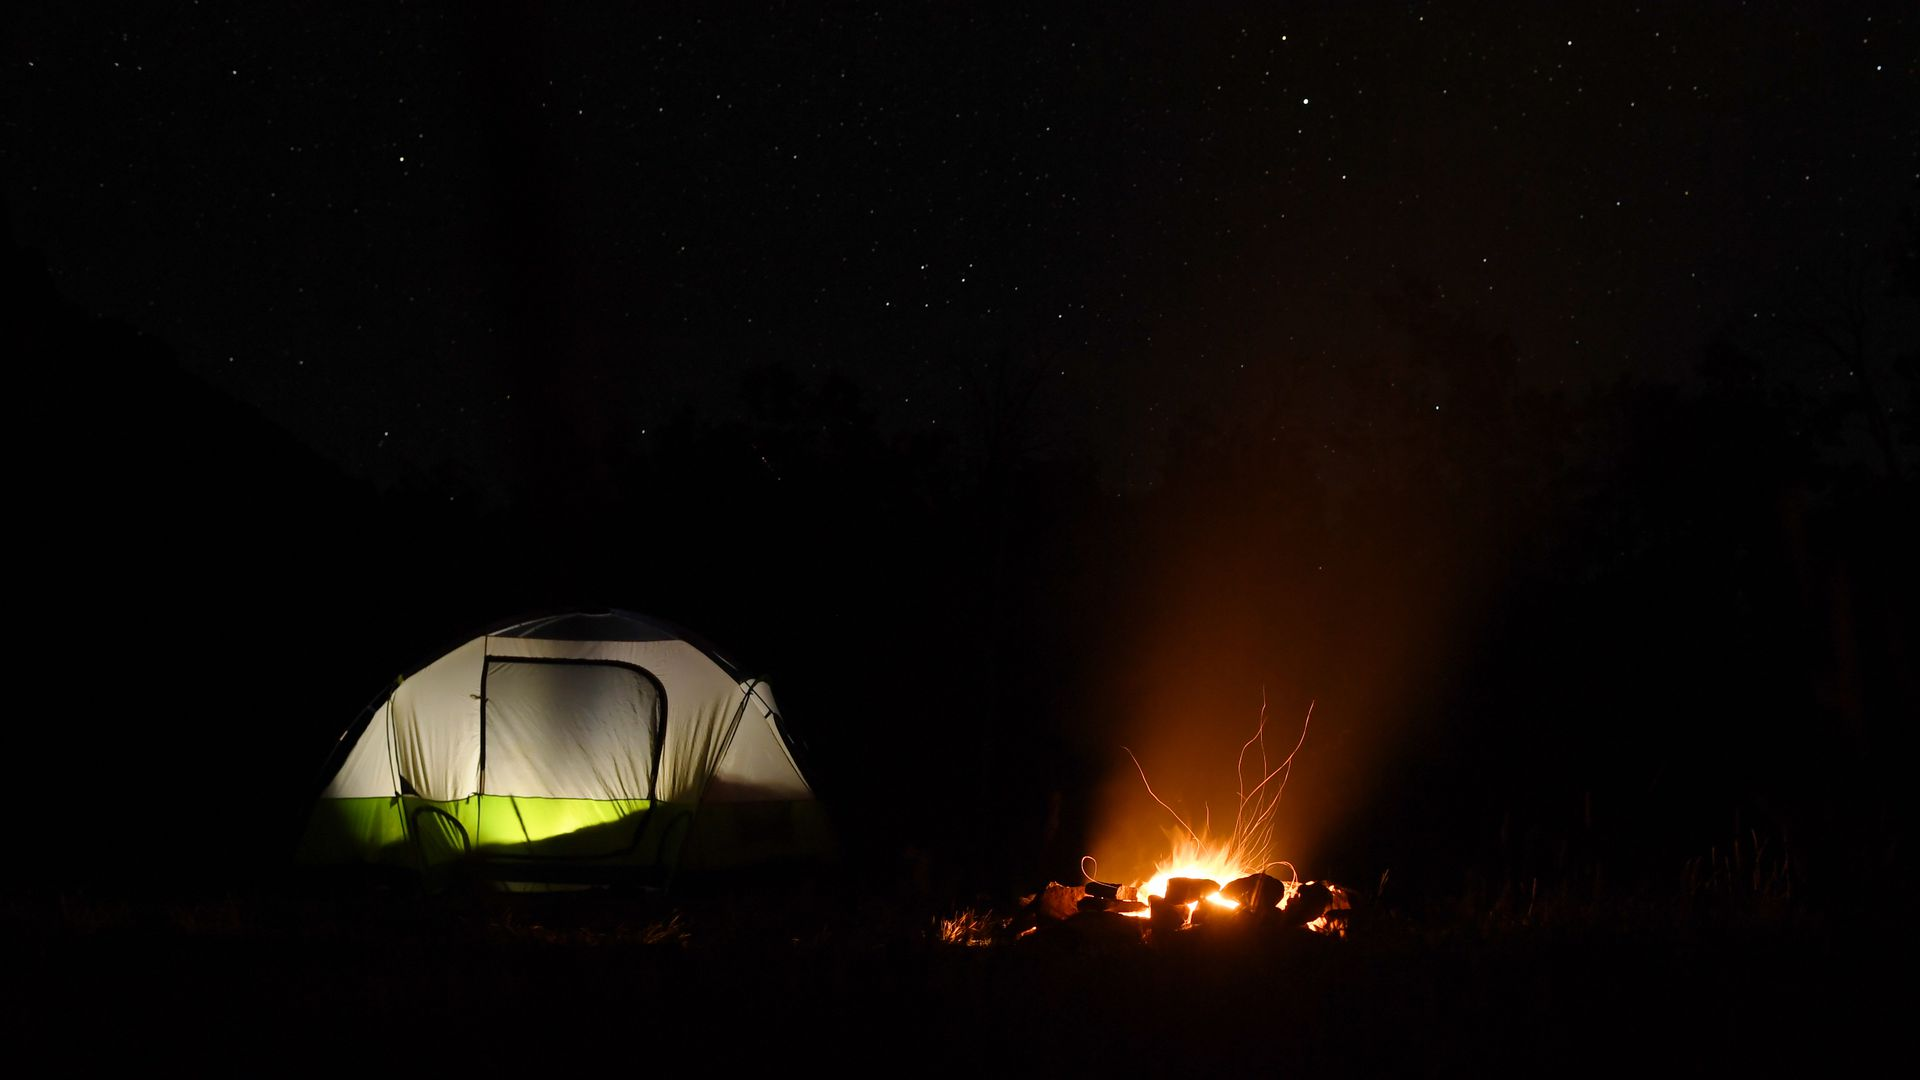 A campfire glows in a fire ring with campers in a tent nearby on Kebler Pass outside of Crested Butte.